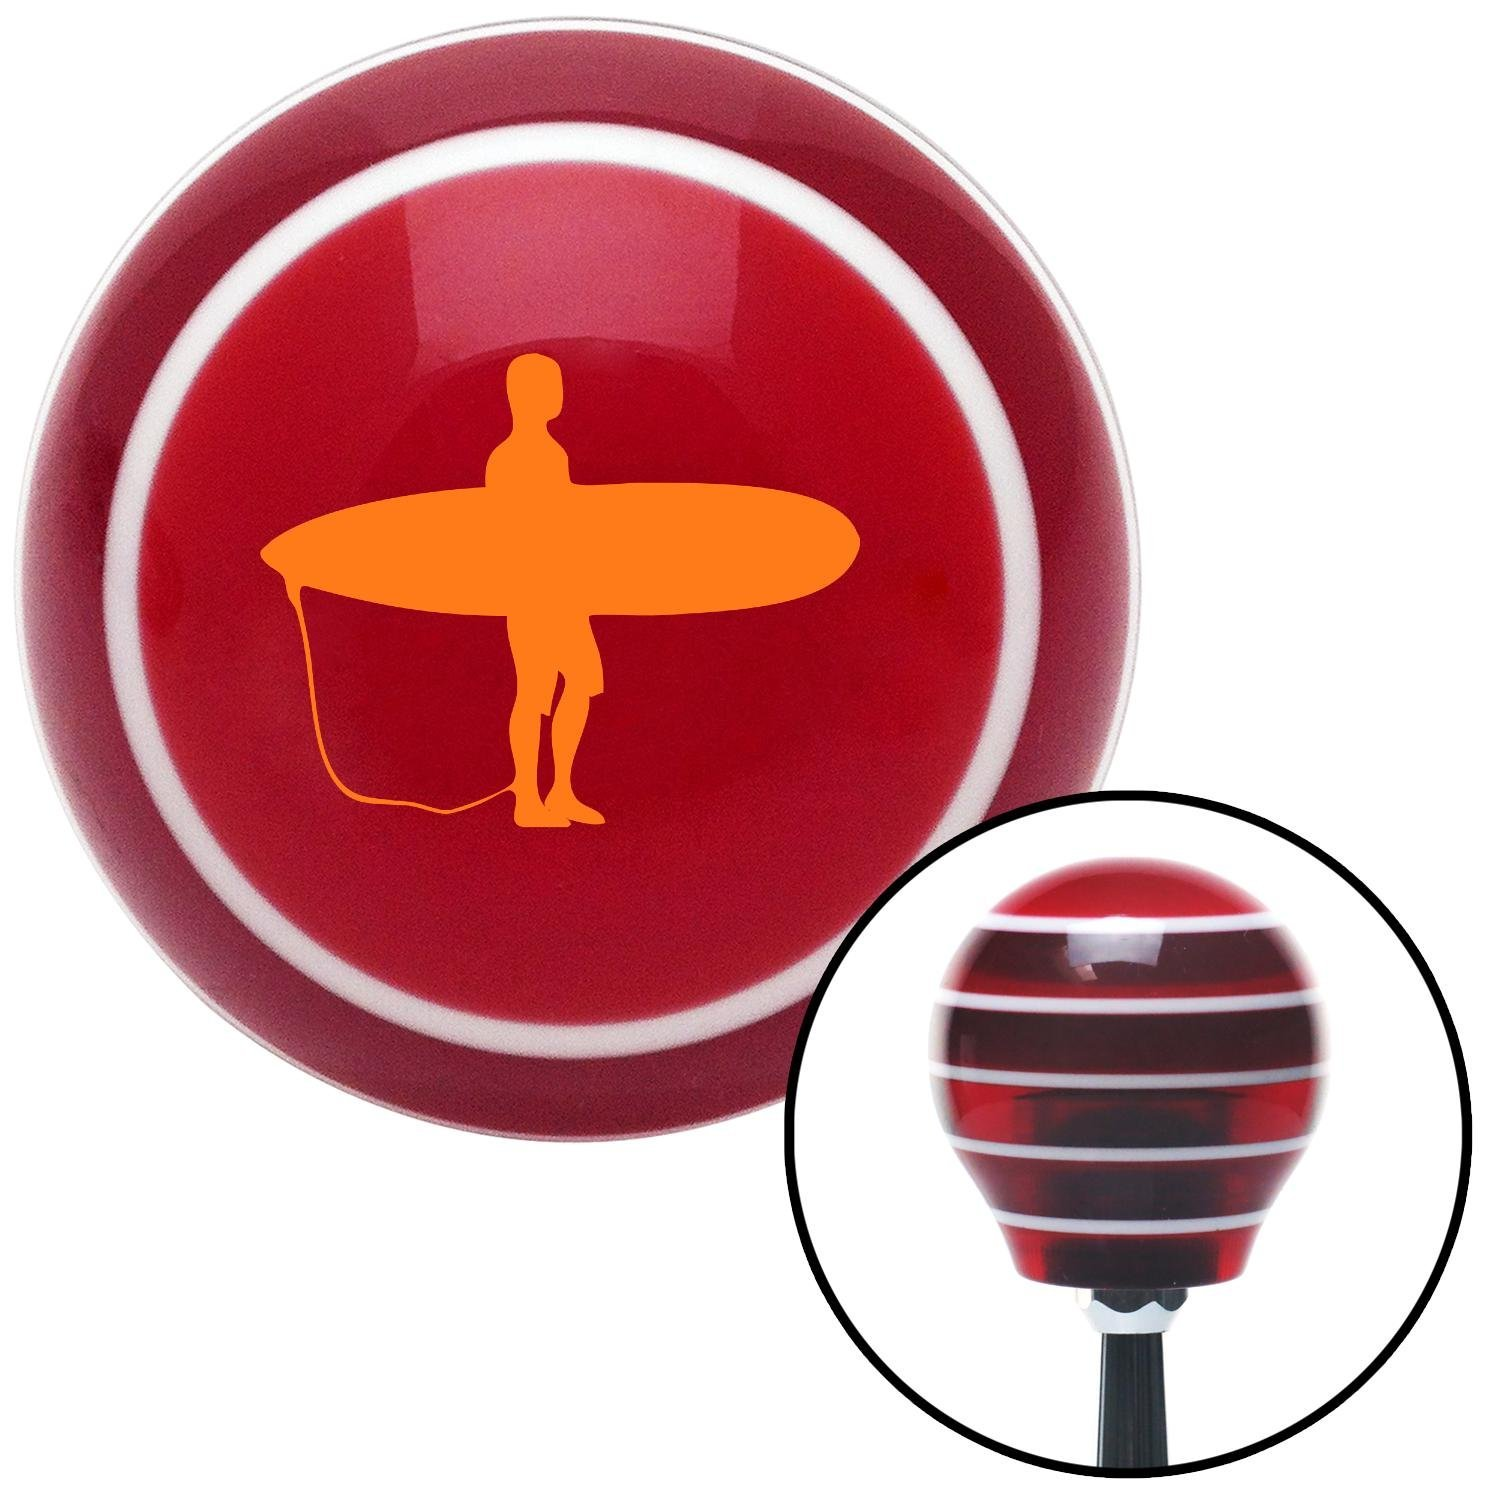 Orange Surfer Waiting on Beach American Shifter 113894 Red Stripe Shift Knob with M16 x 1.5 Insert